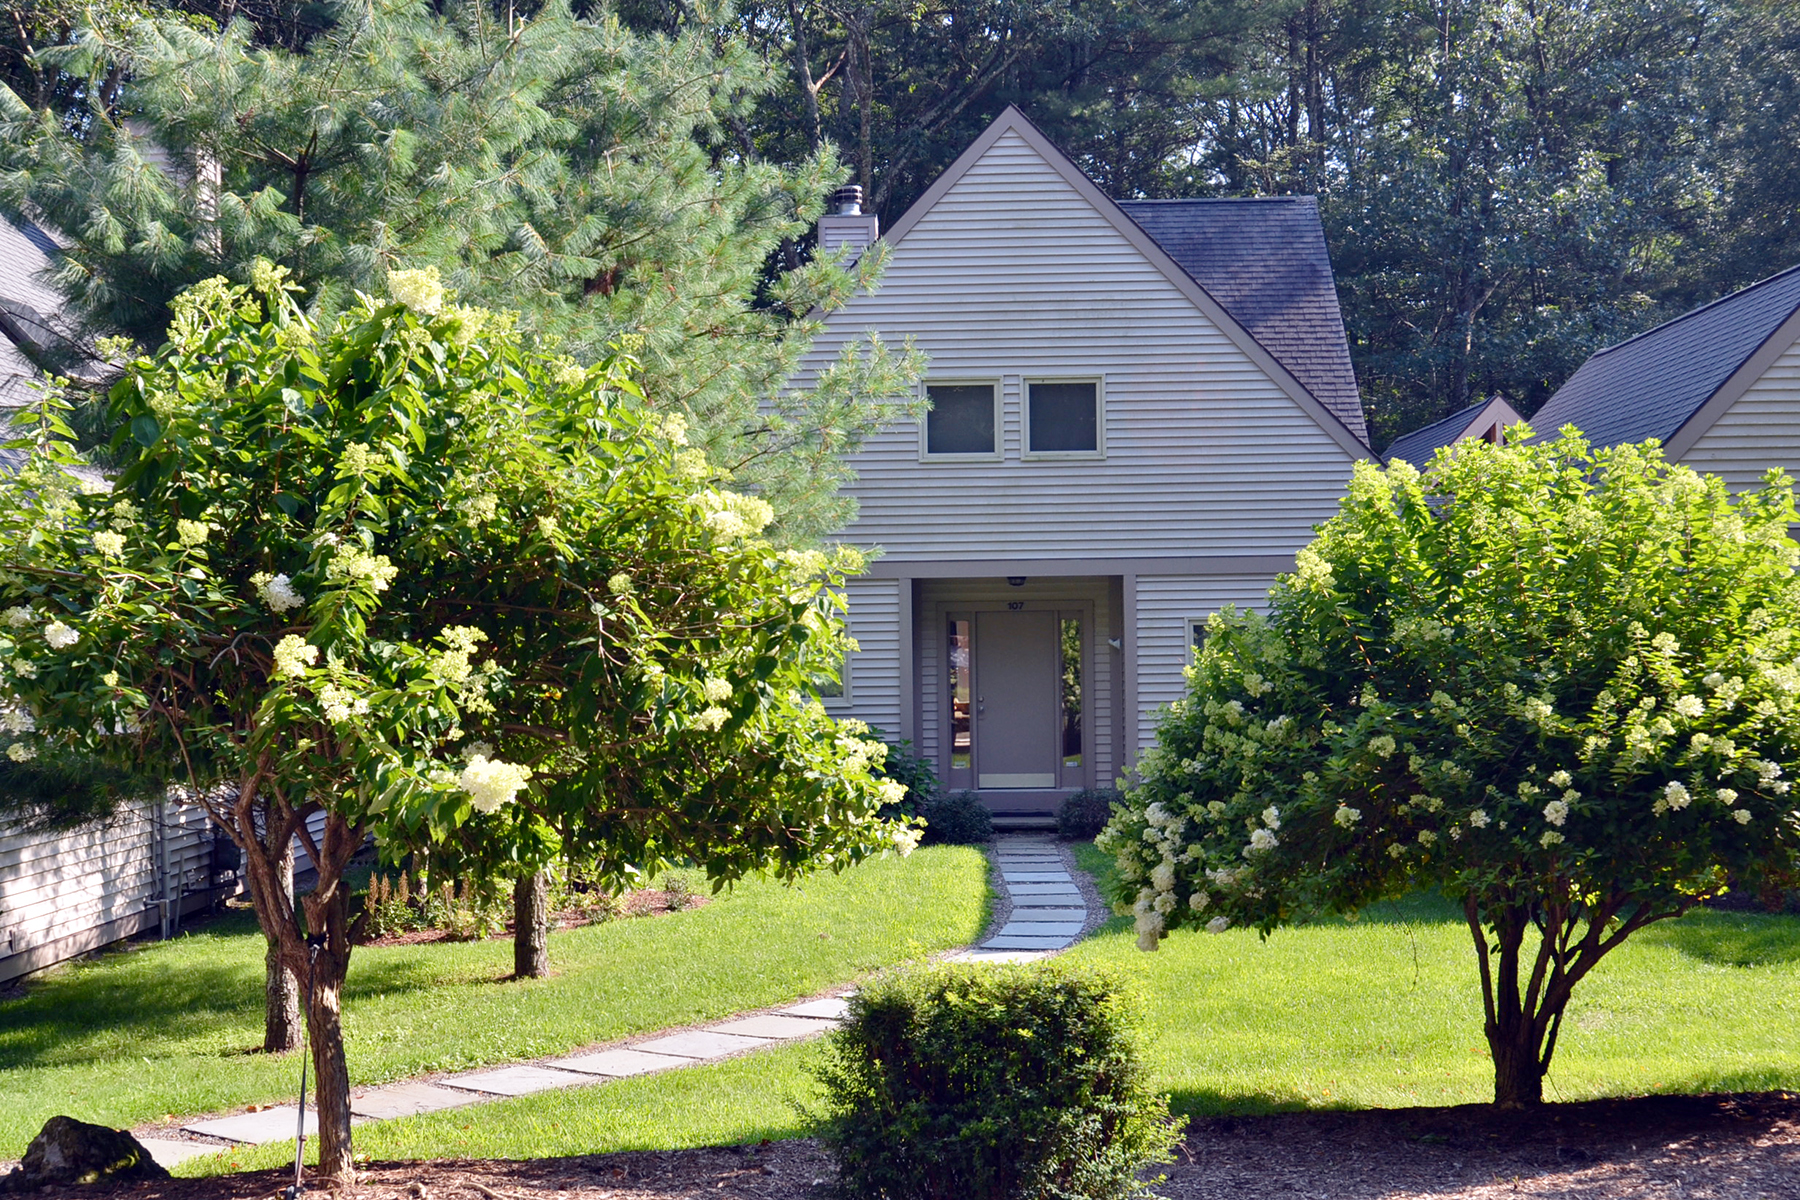 Single Family Home for Sale at Sublime Lake Community Home 107 Arcadia Ancram, New York 12502 United States